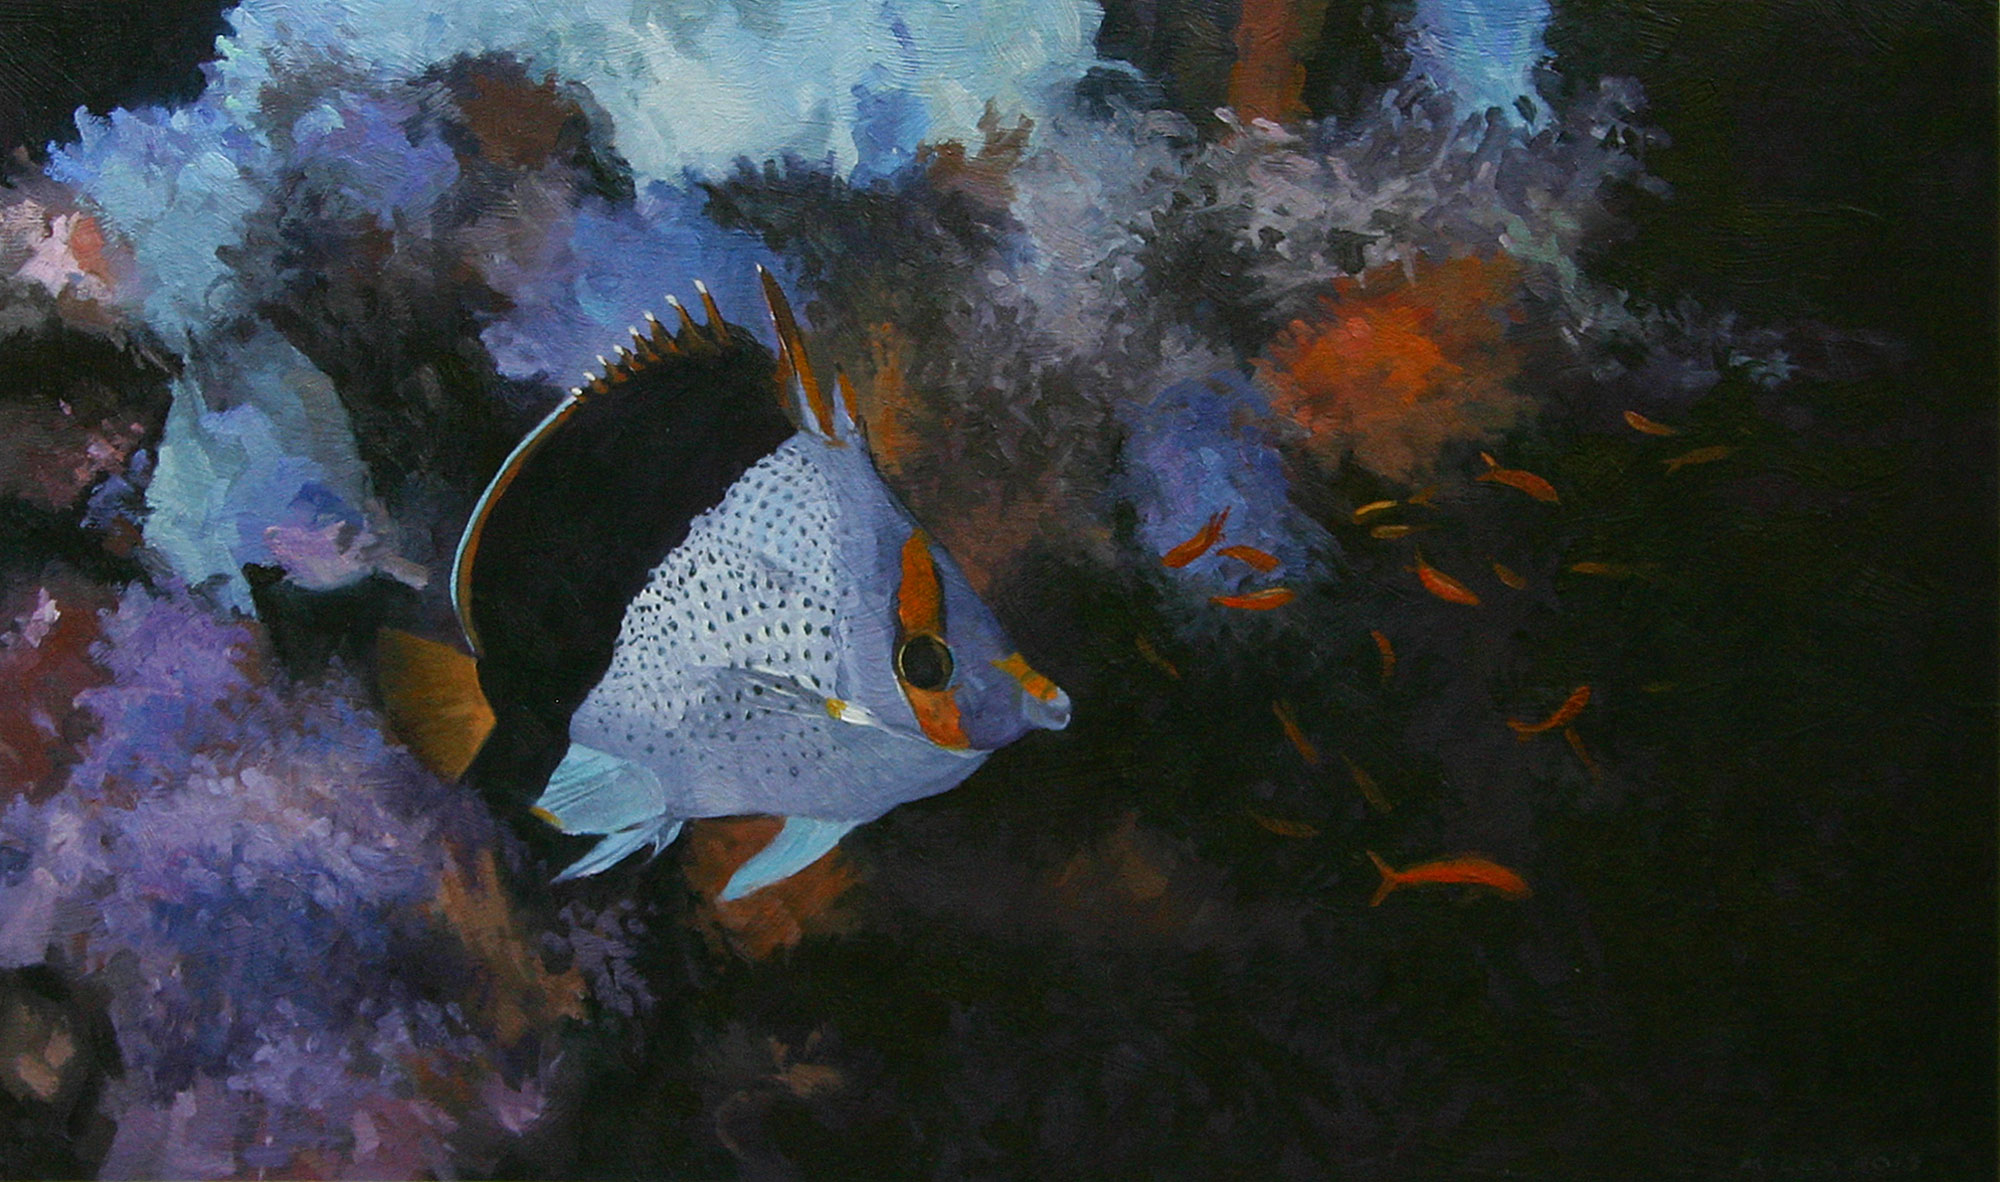 Gerry_Miles_divepaint_underwater_paintings_Yellow_Crowned_Butterfly_Fish.jpg